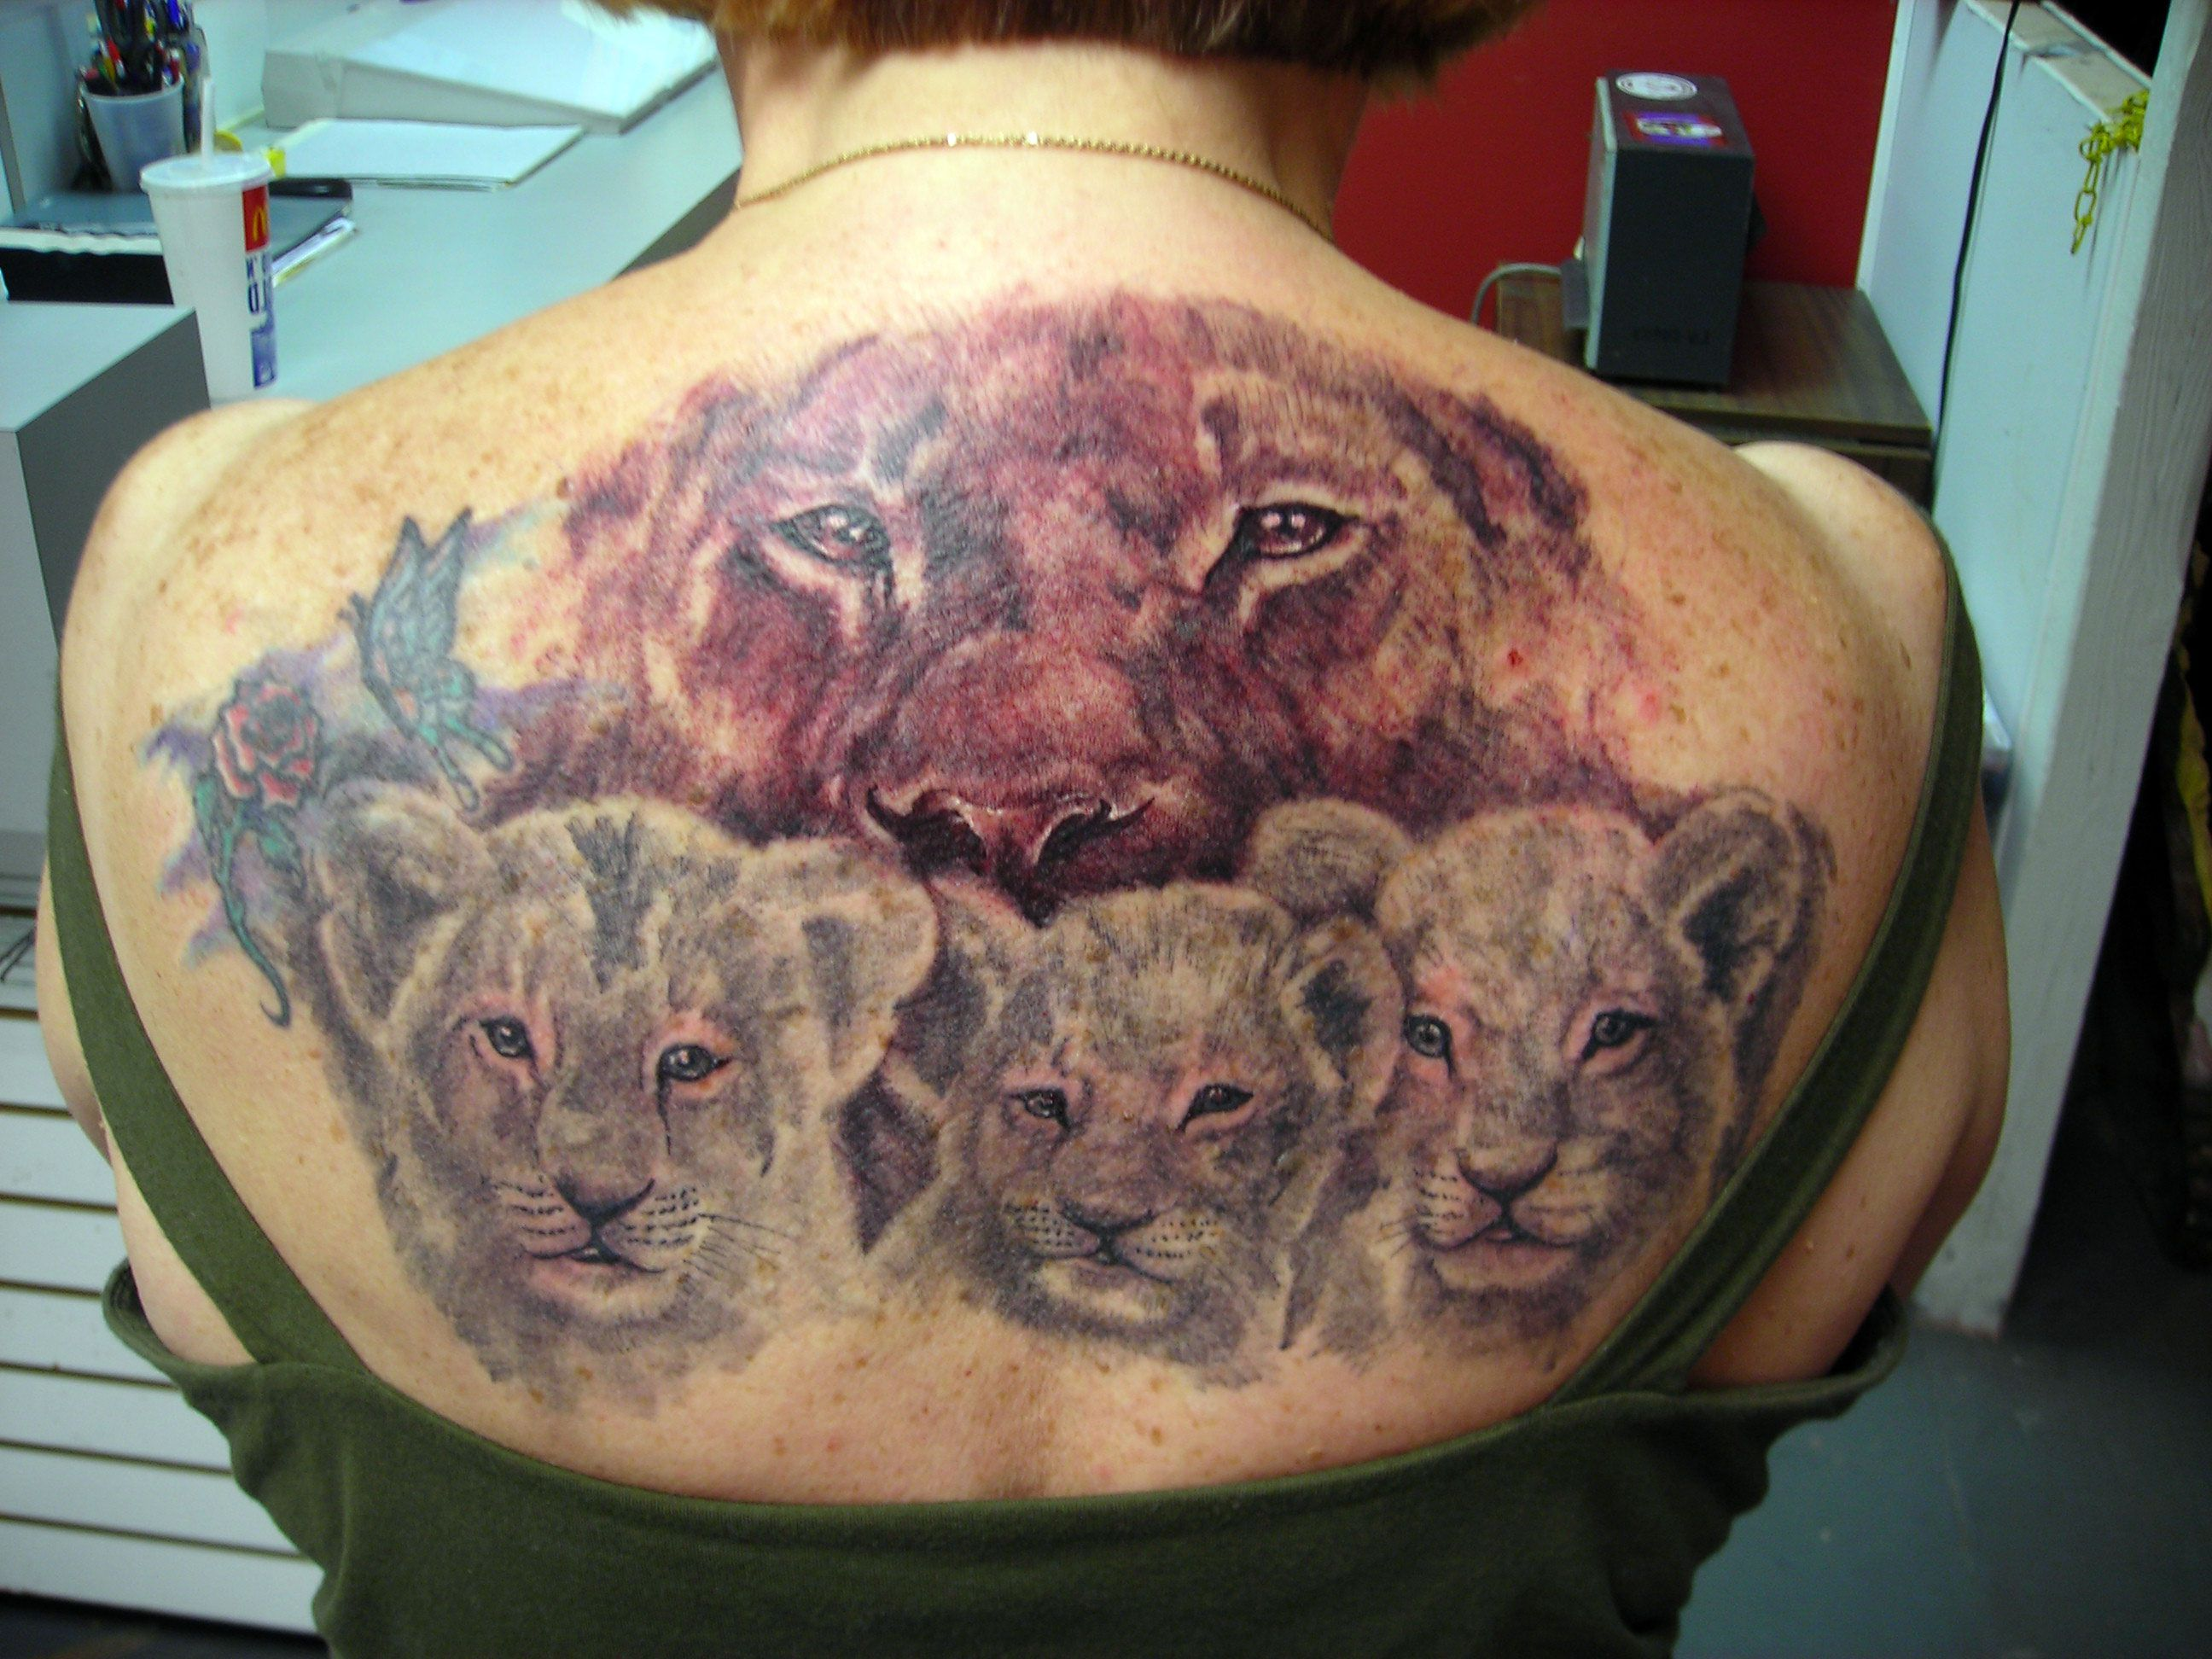 Lioness tattoo for women female lioness tattoo cool tattoos lioness tattoo for women female lioness tattoo cool tattoos bonbaden buycottarizona Gallery